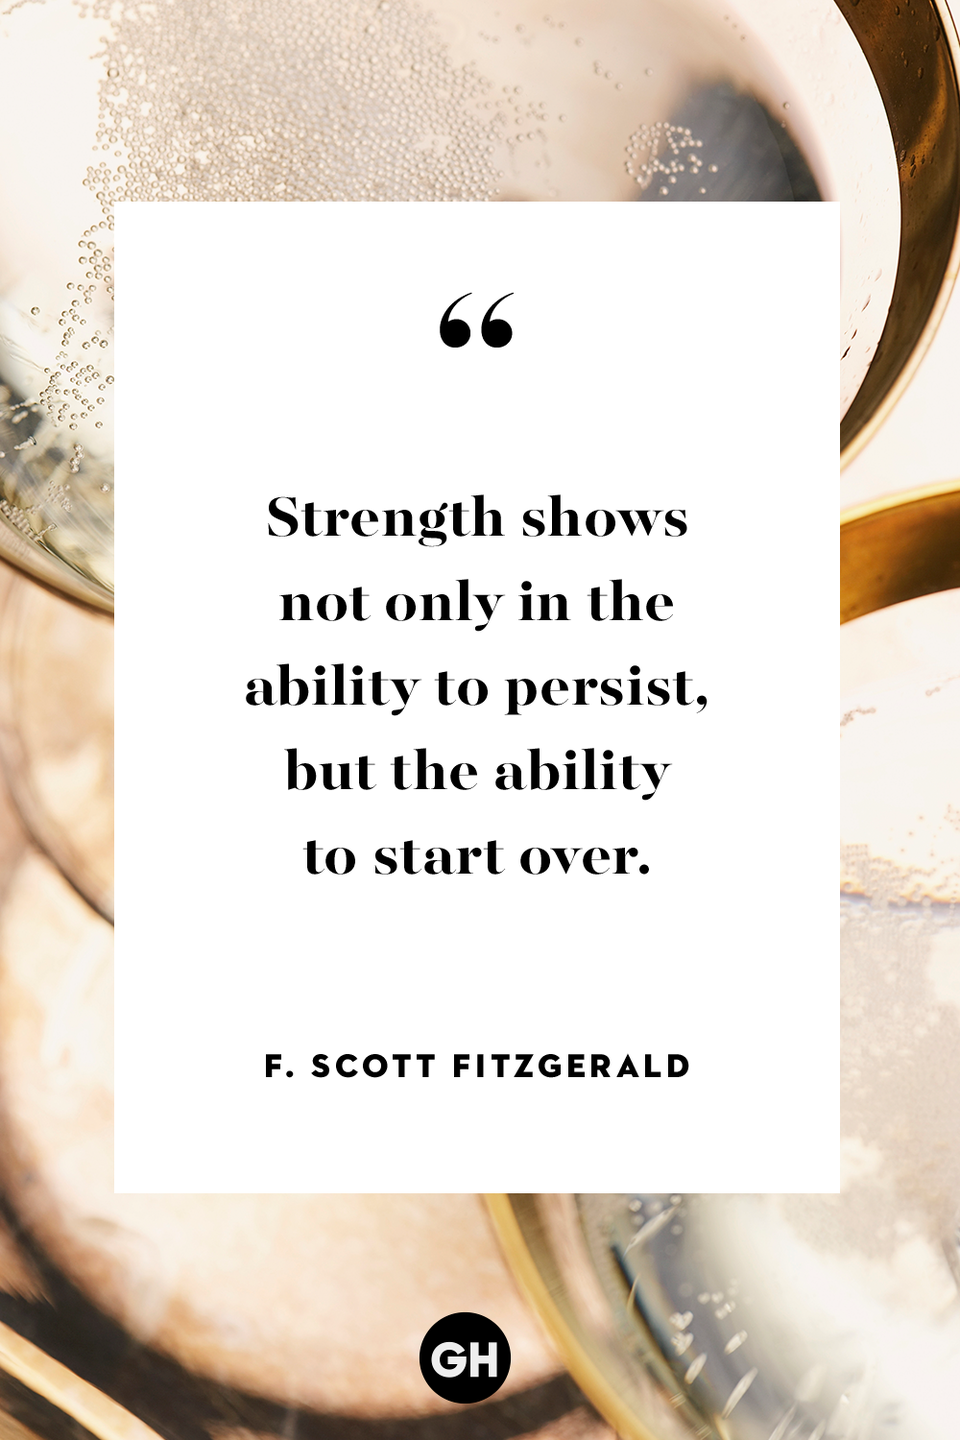 <p>Strength shows not only the ability to persist, but the ability to start over.</p>